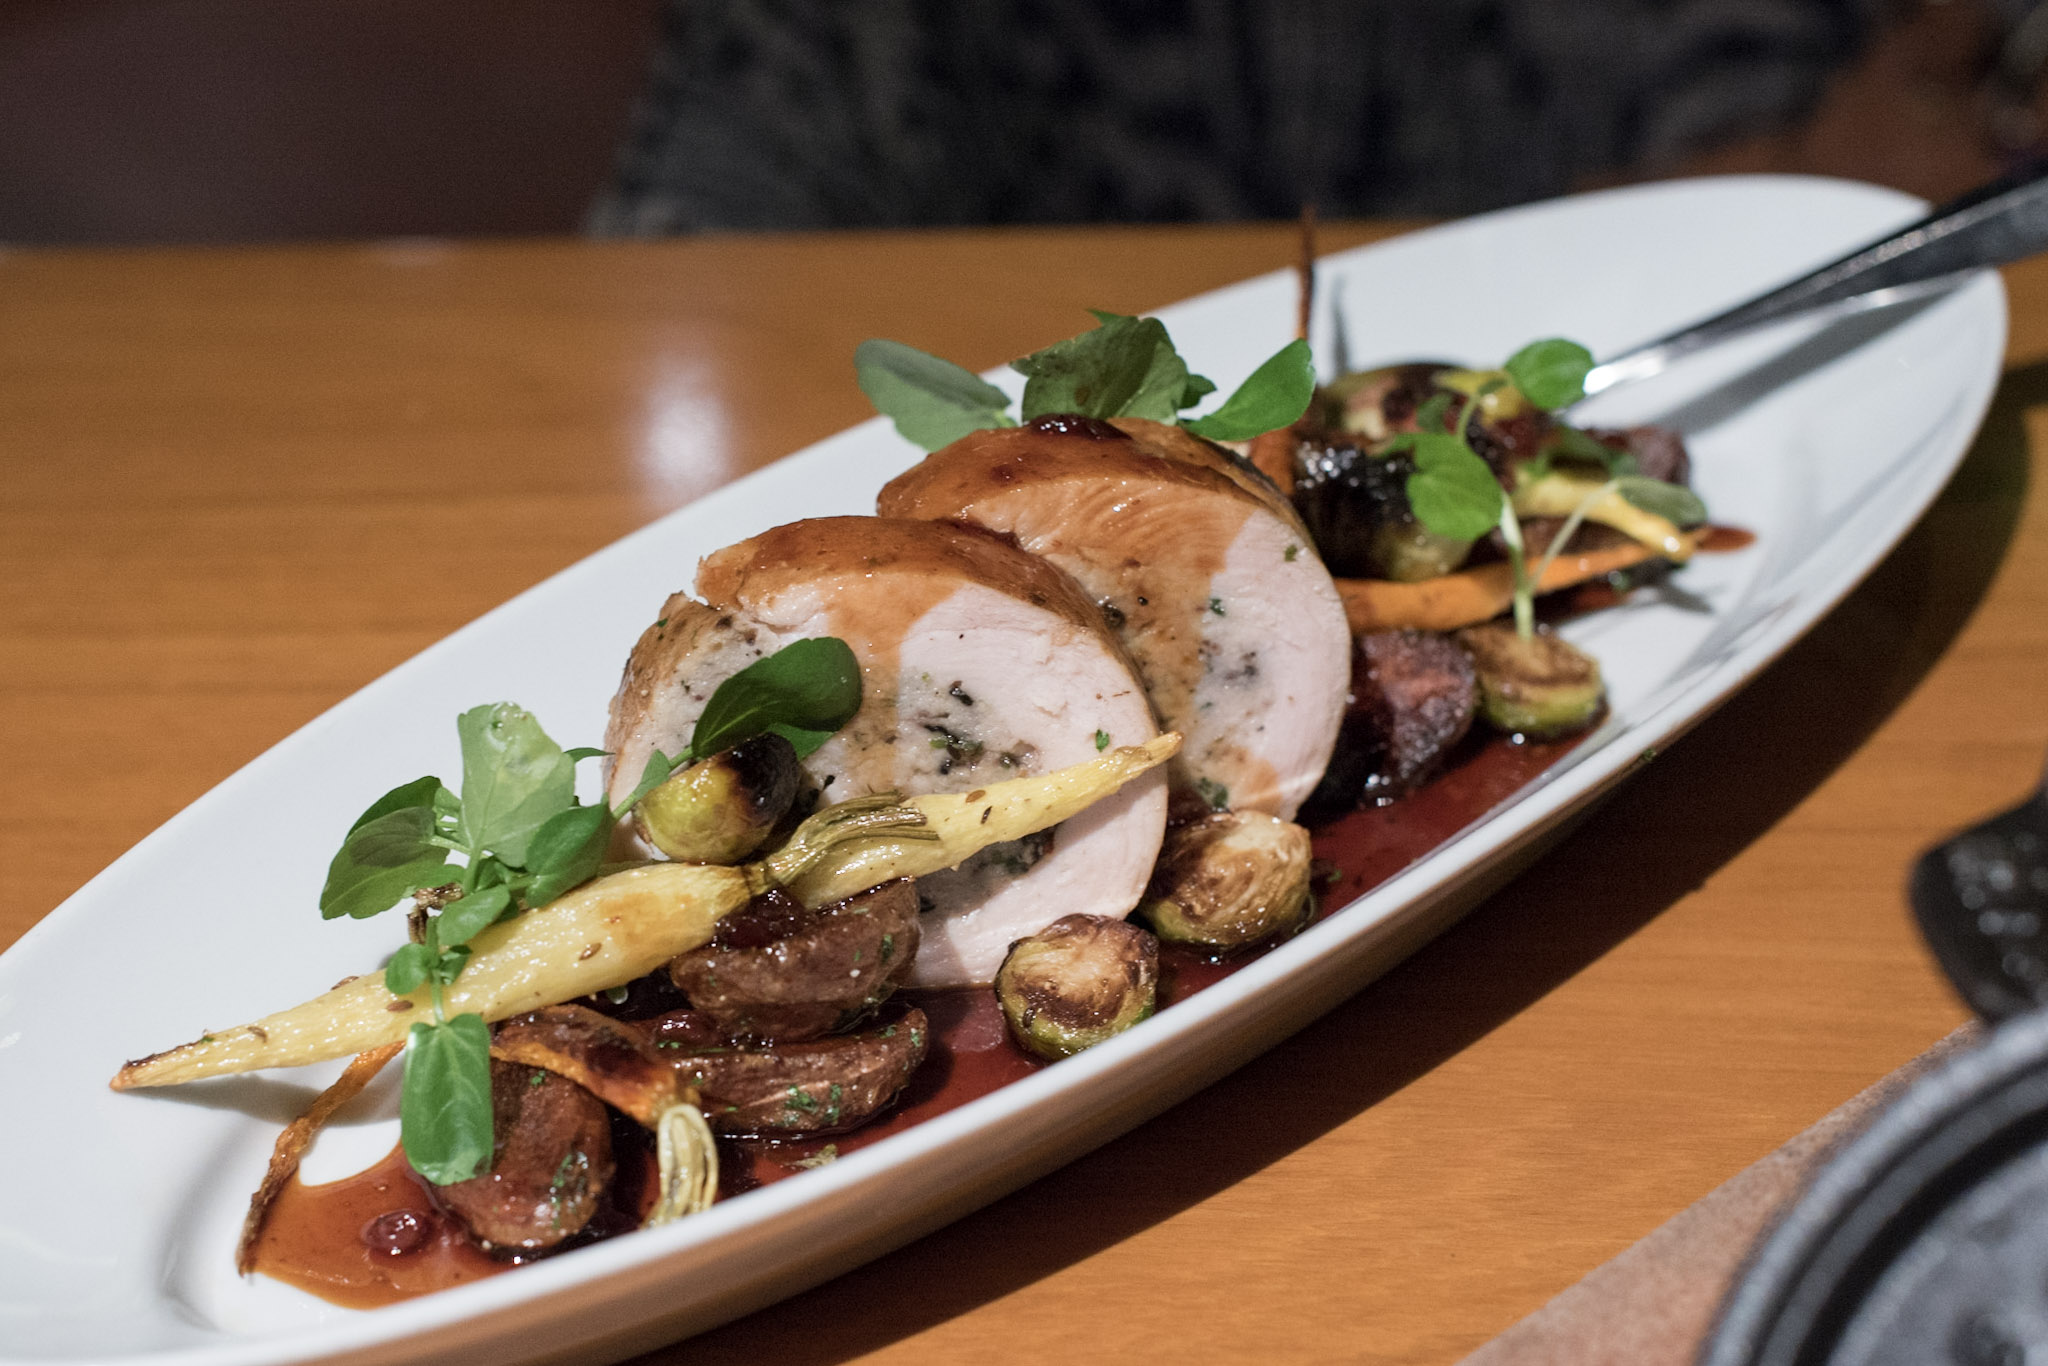 Slow-roasted Turkey Breast Roulade, Brussels Sprouts, Organic Carrots, Potatoes (S$34++)  mezza9 - Grand Hyatt Singapore